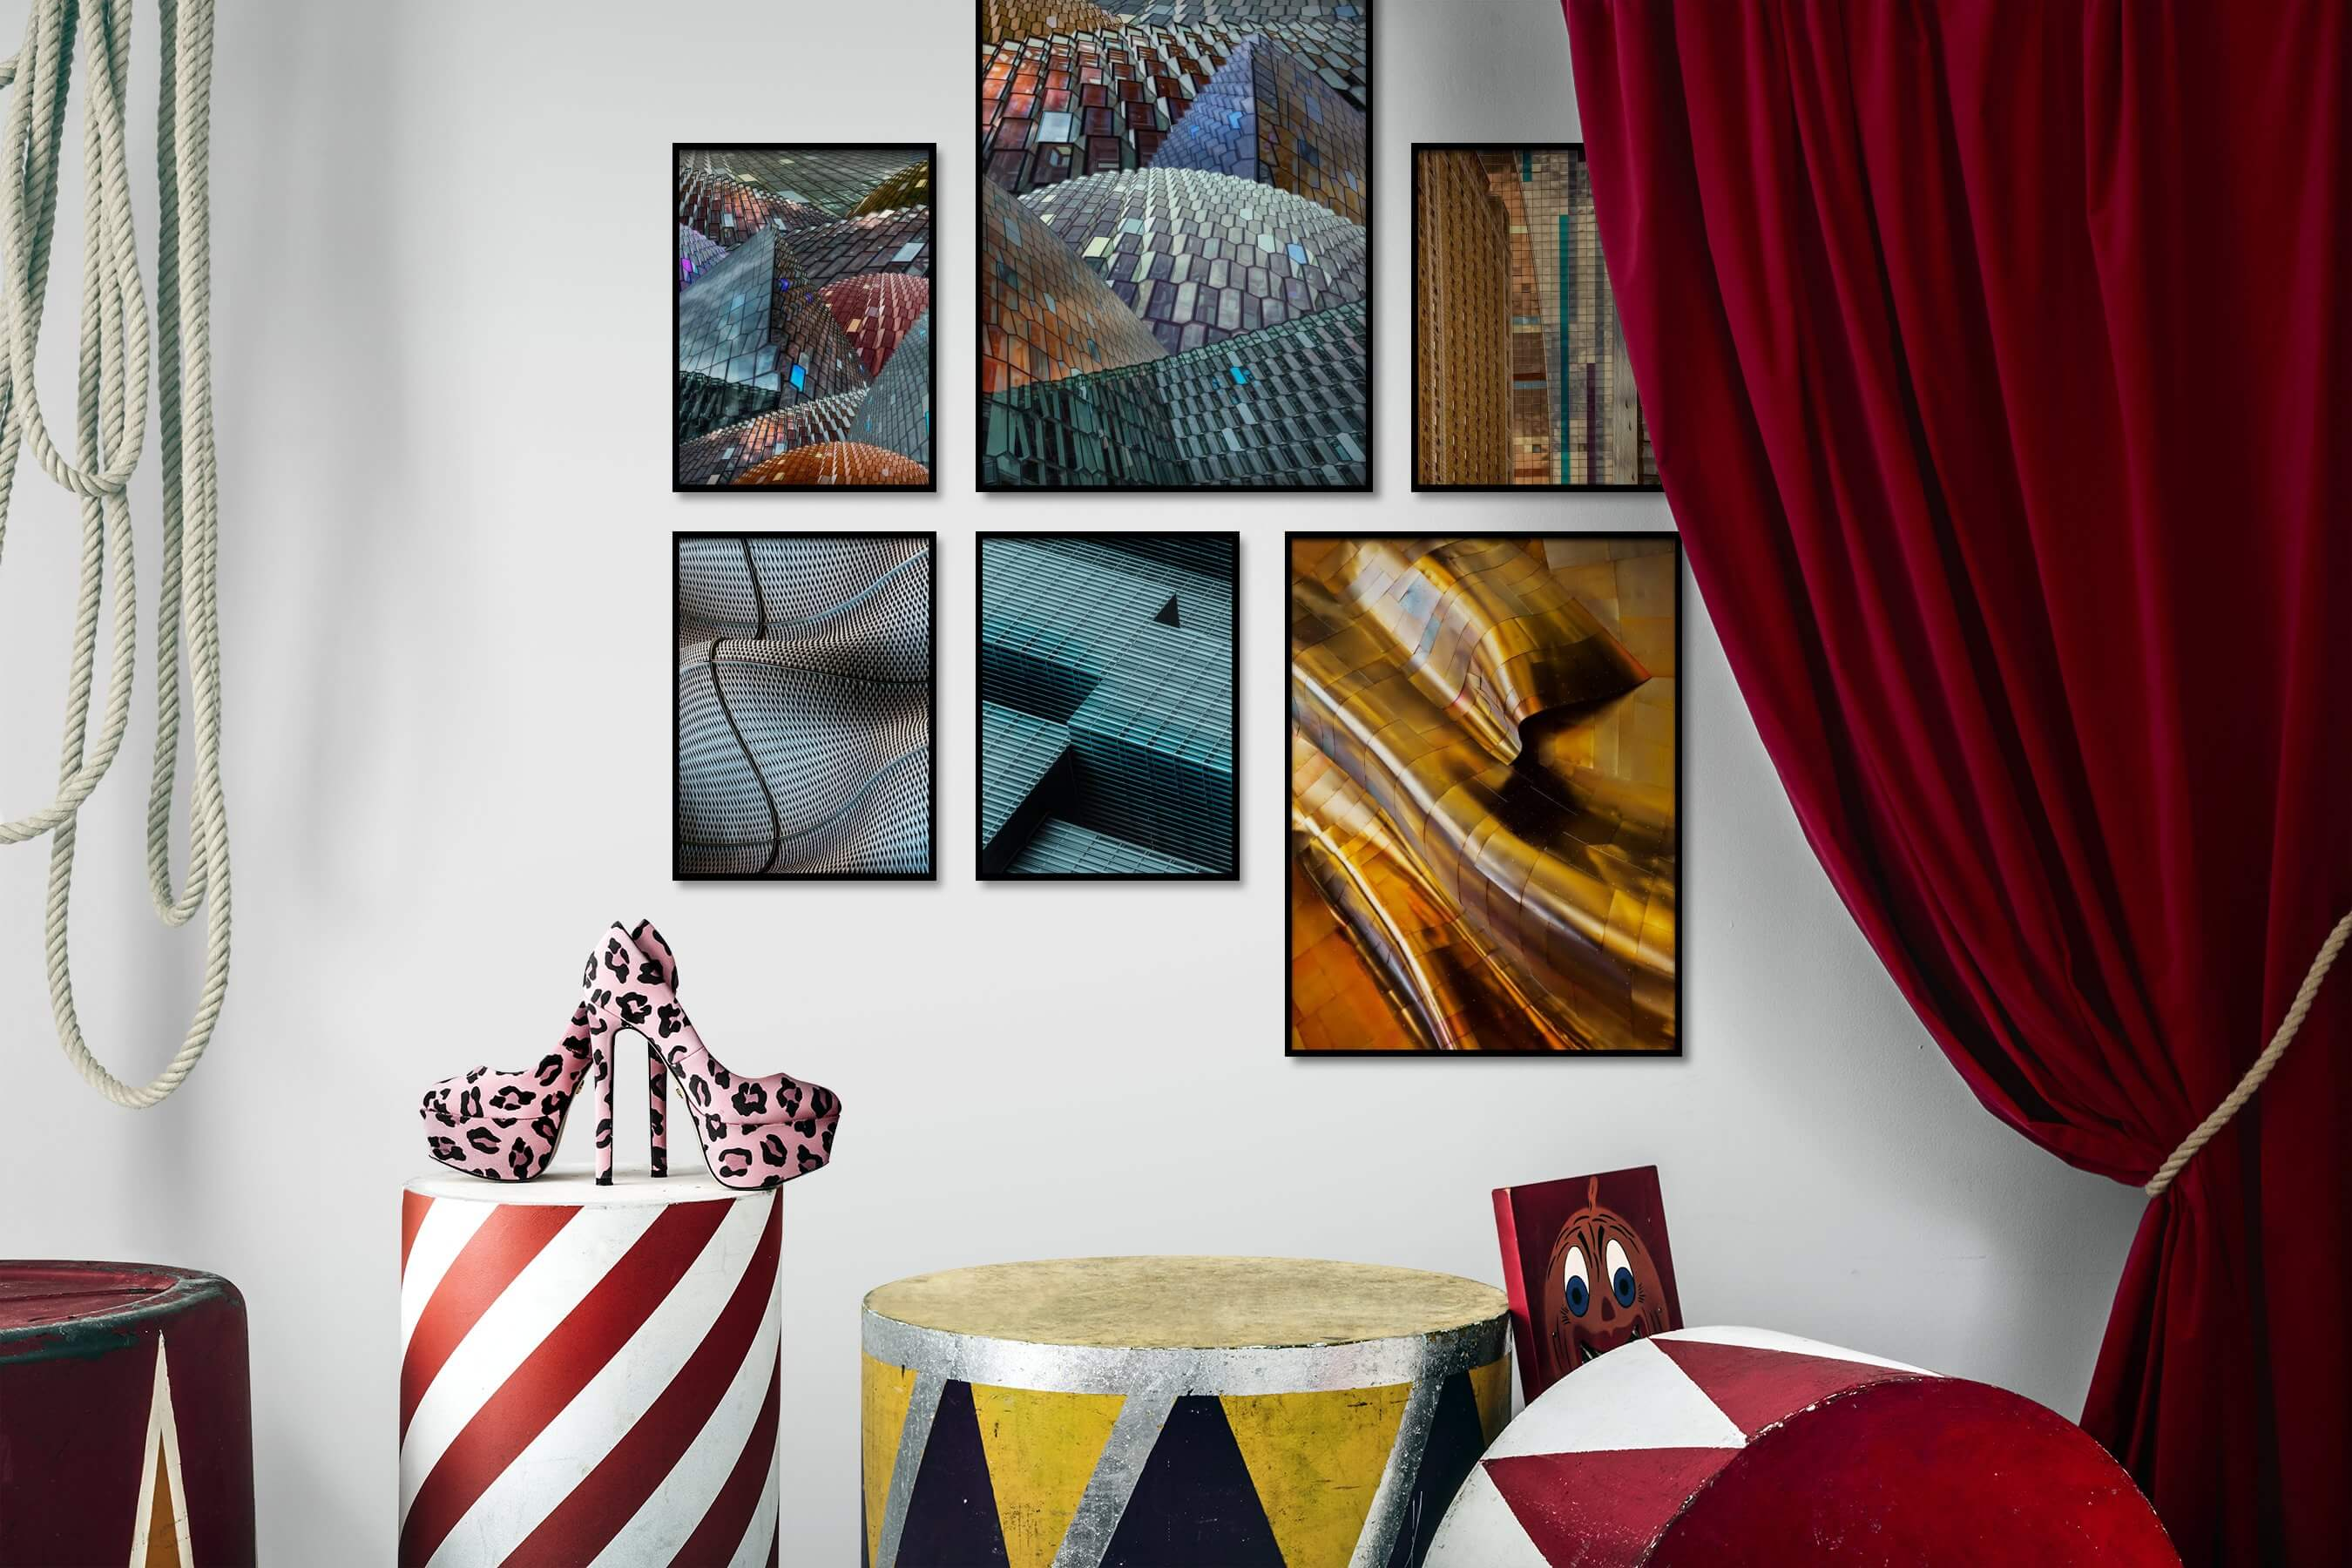 Gallery wall idea with six framed pictures arranged on a wall depicting For the Maximalist, Colorful, City Life, and Americana